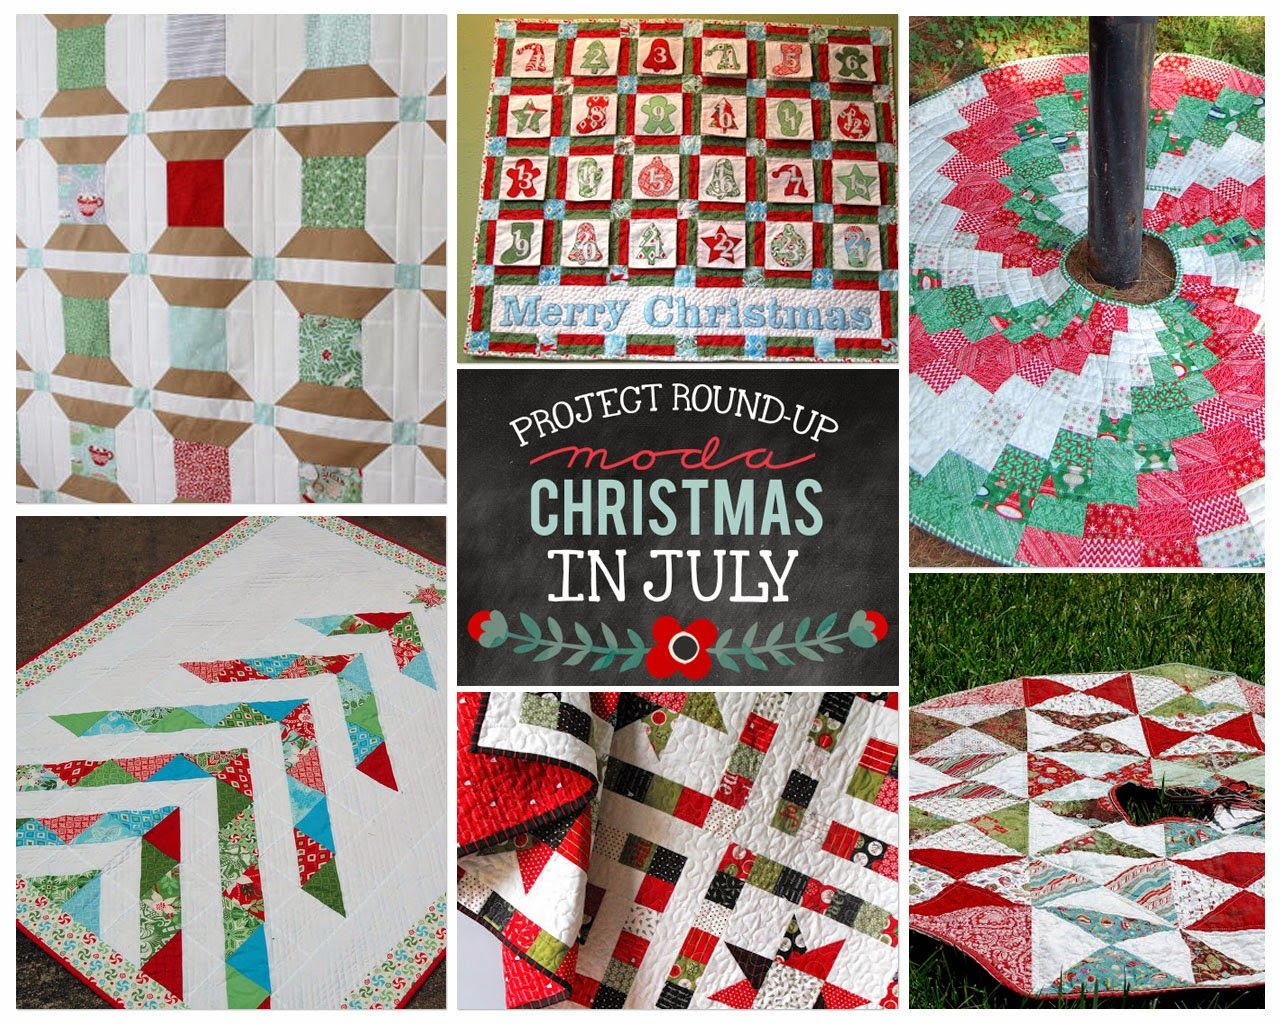 Christmas in July Round Up #holidaysinjuly